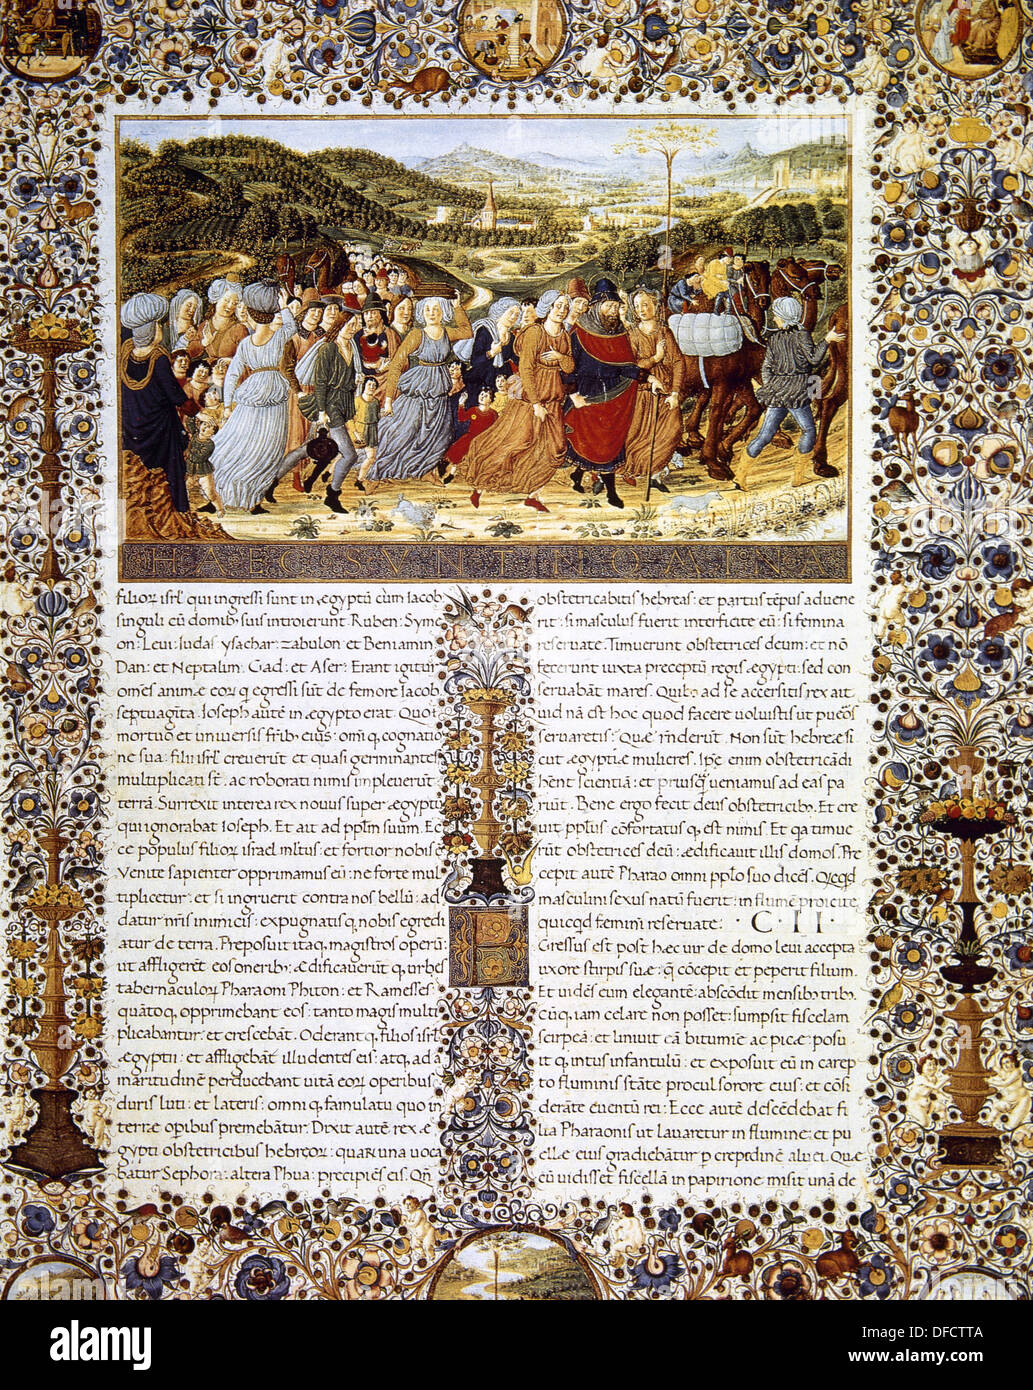 Urbinate Bible (1476-78). The Exodus. The departure of the Israelites from Egypt under the leadership of Moses. - Stock Image